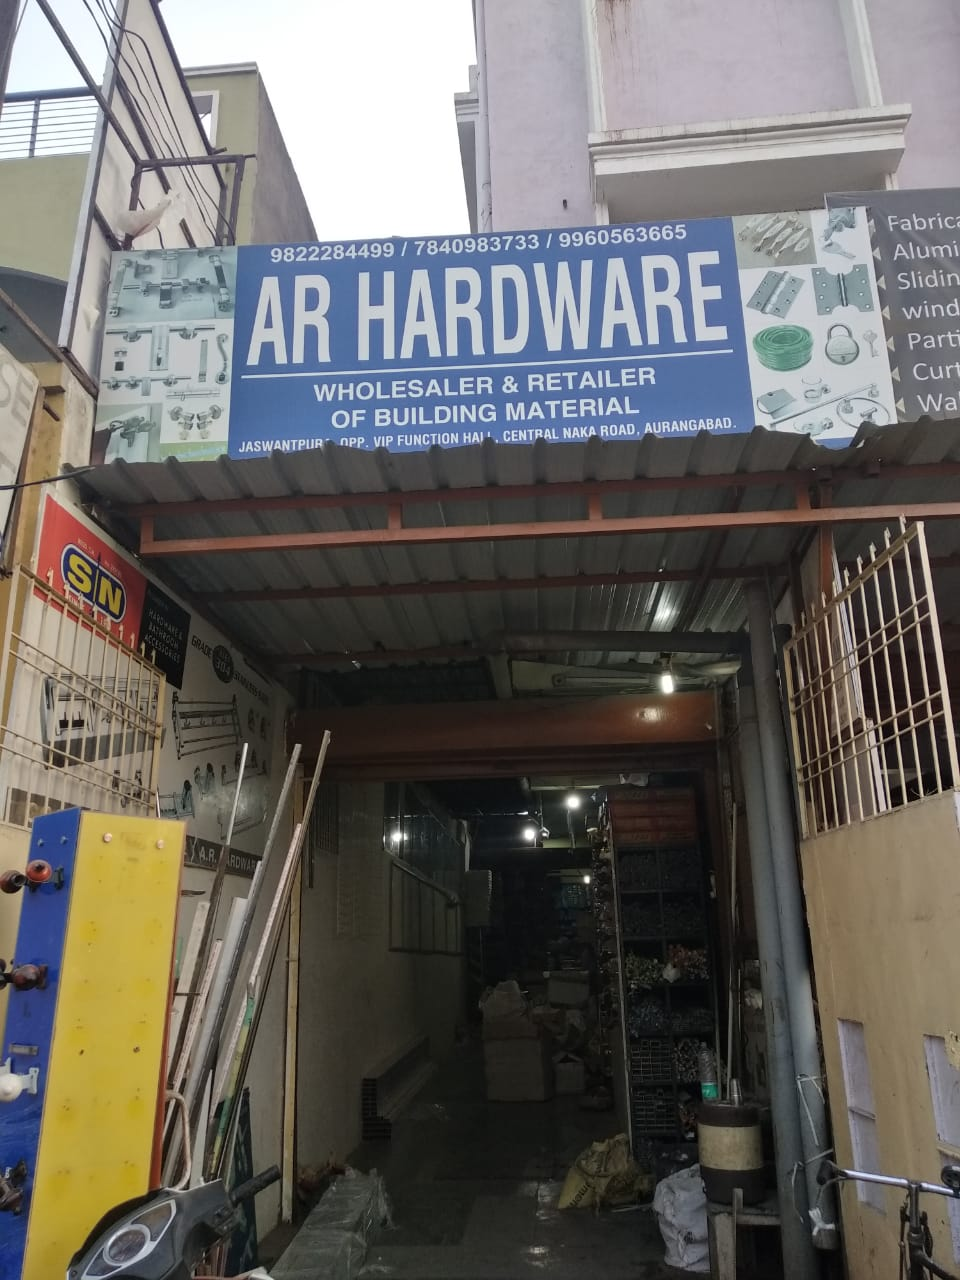 A.R. HARDWARE